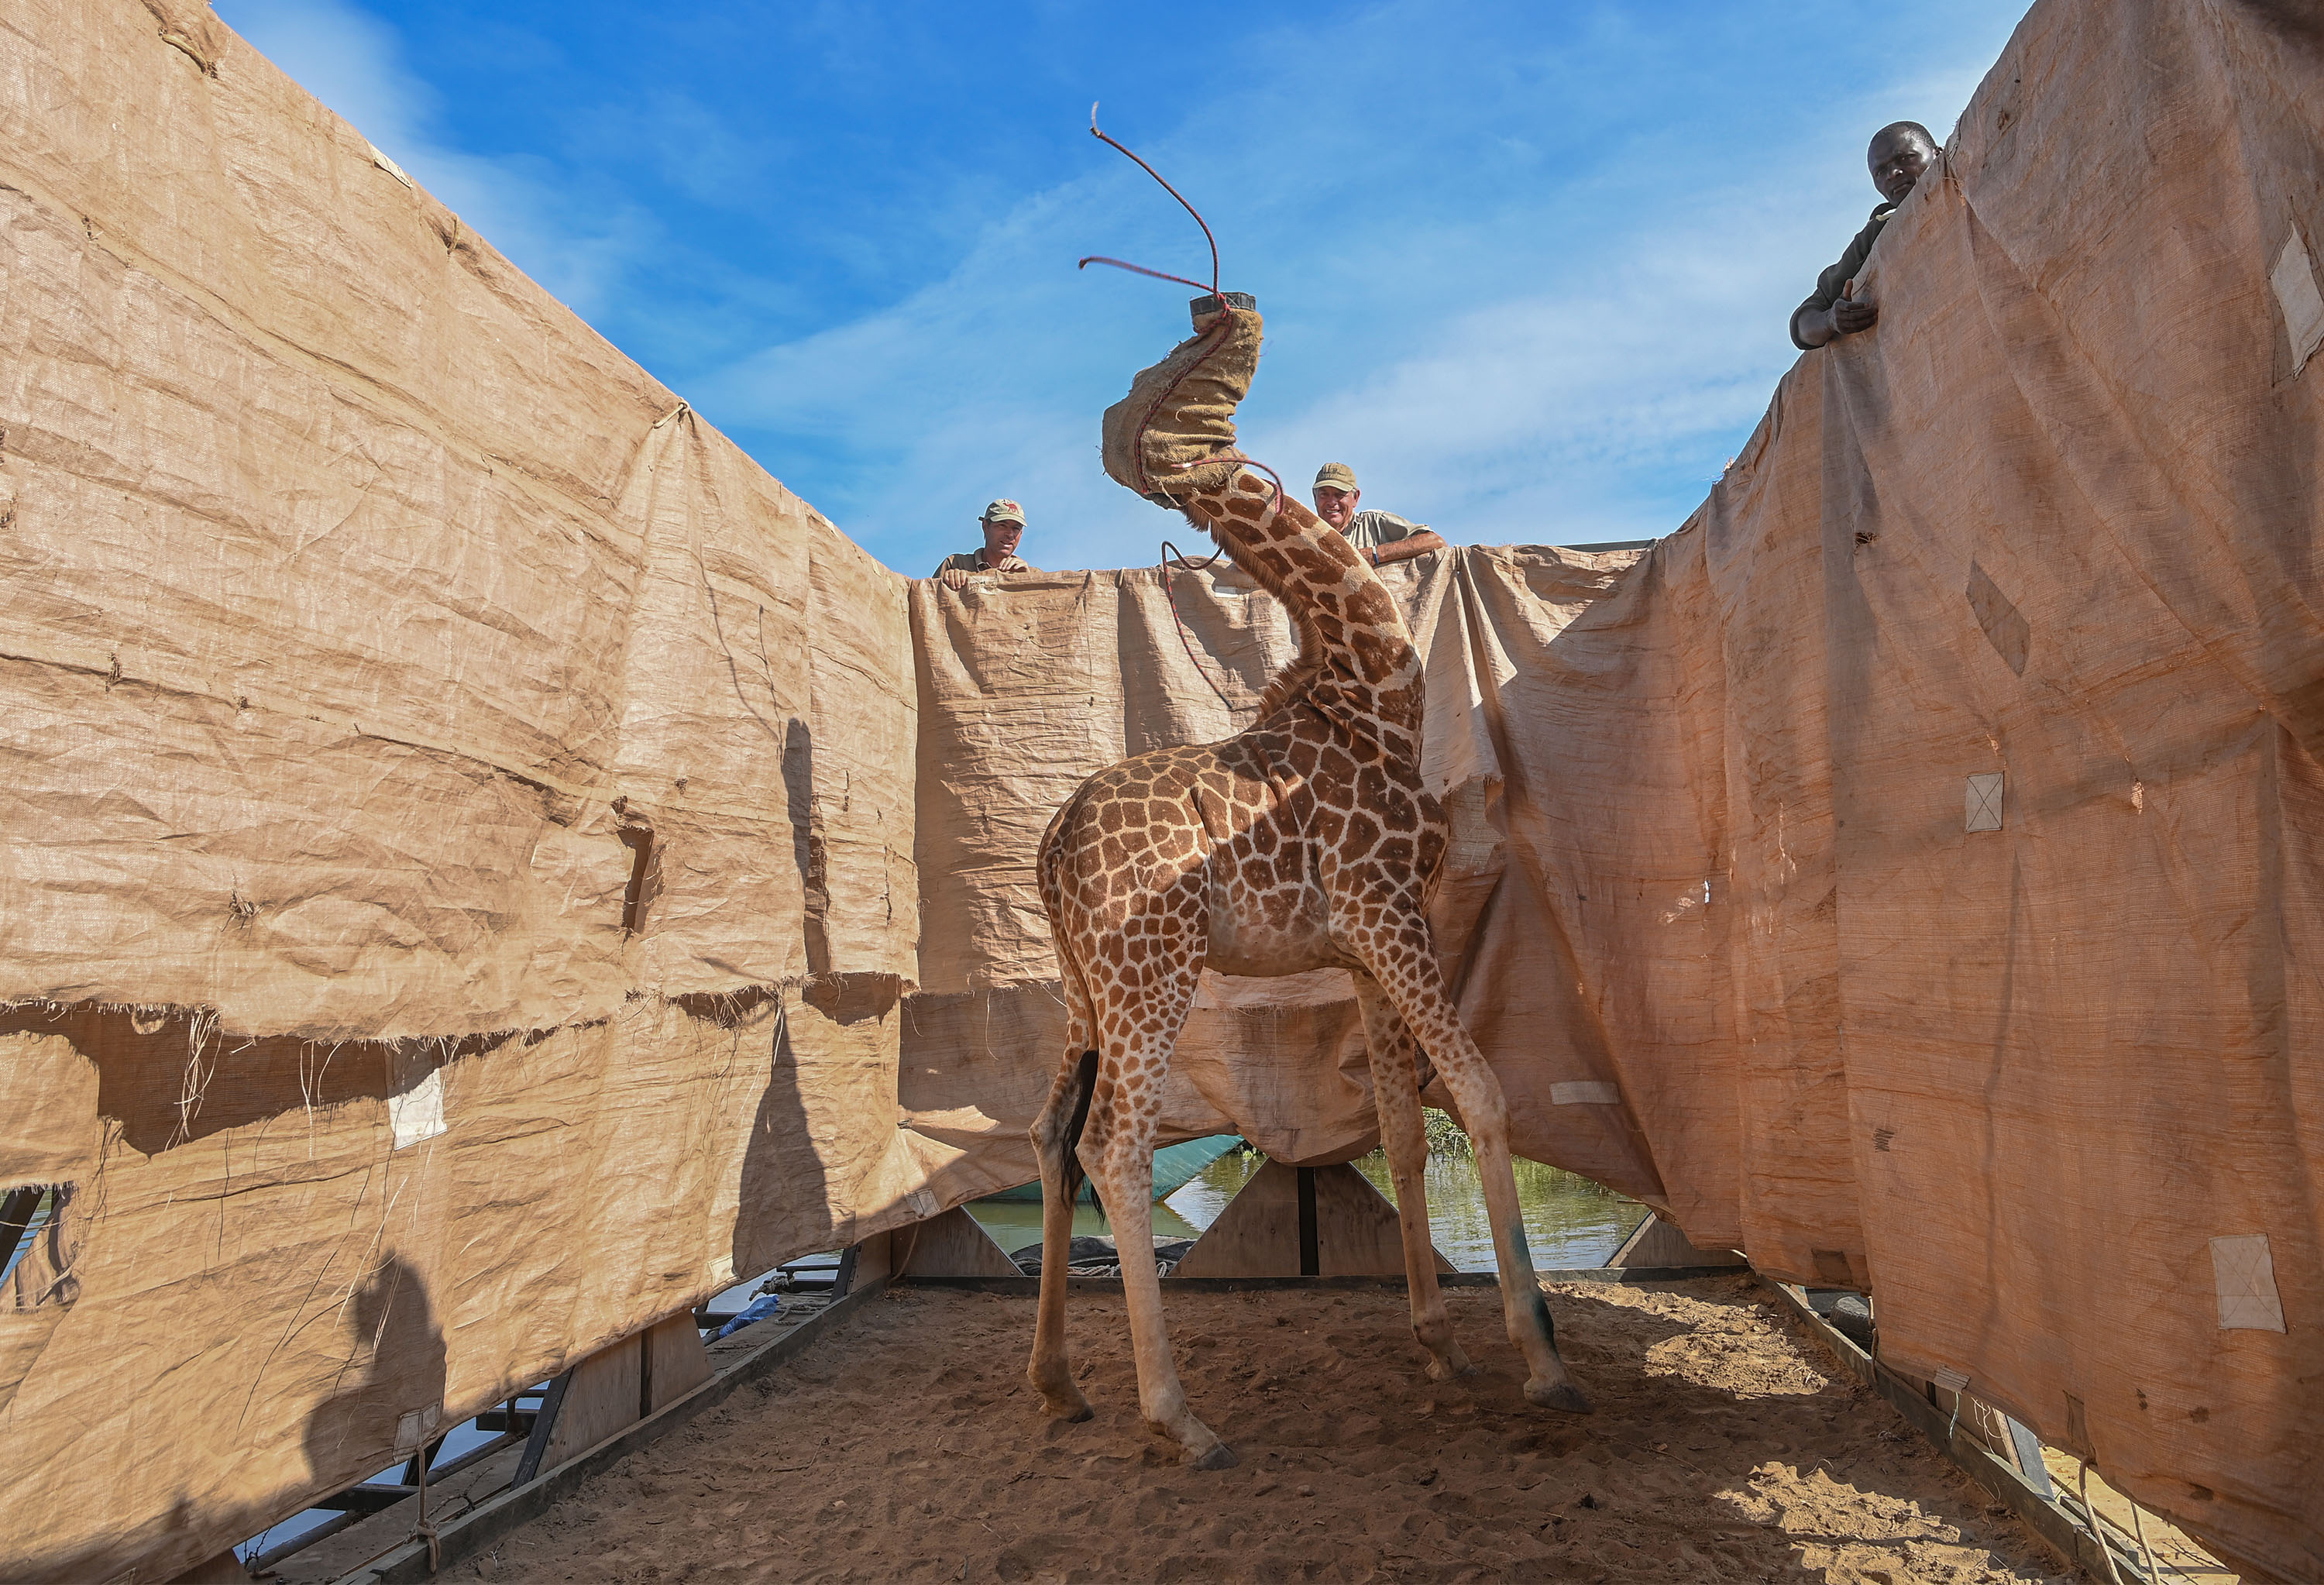 Rescue of Giraffes from Flooding Island, Ami Vitale, for CNN